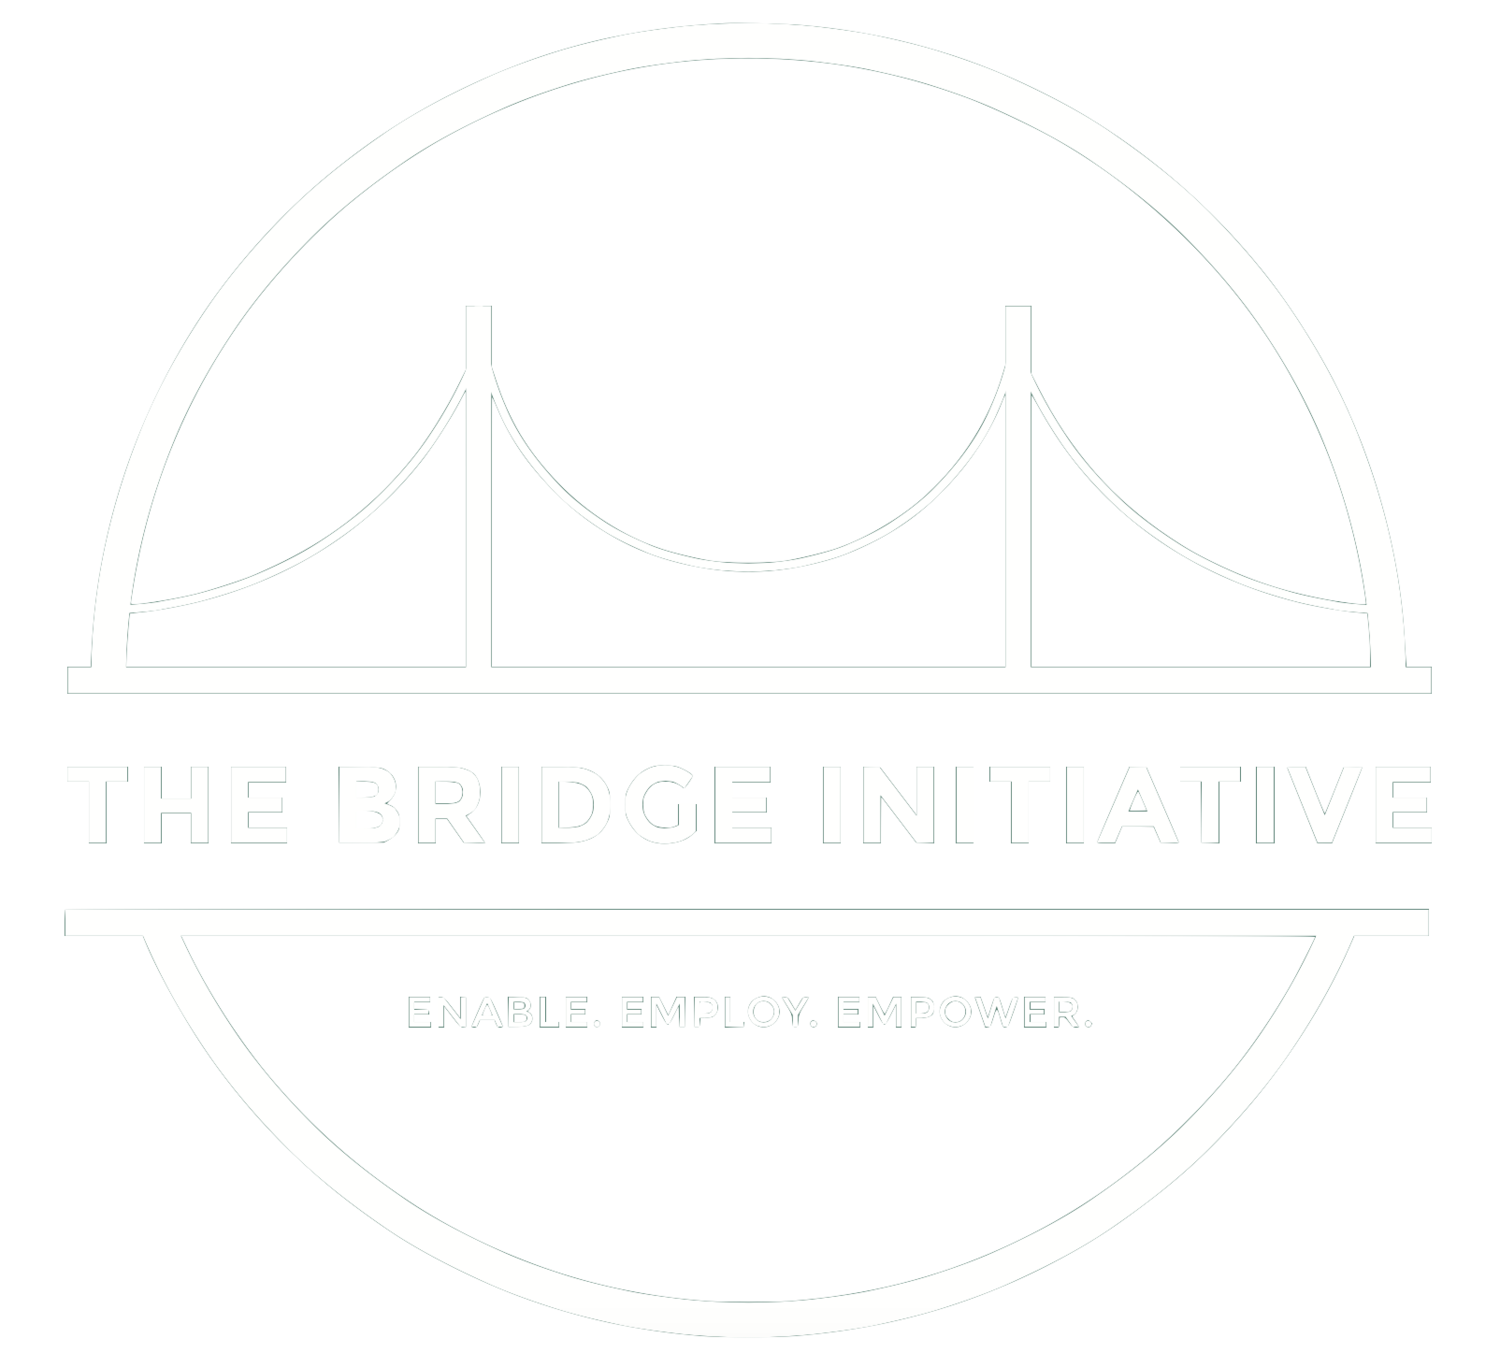 The Bridge Initative